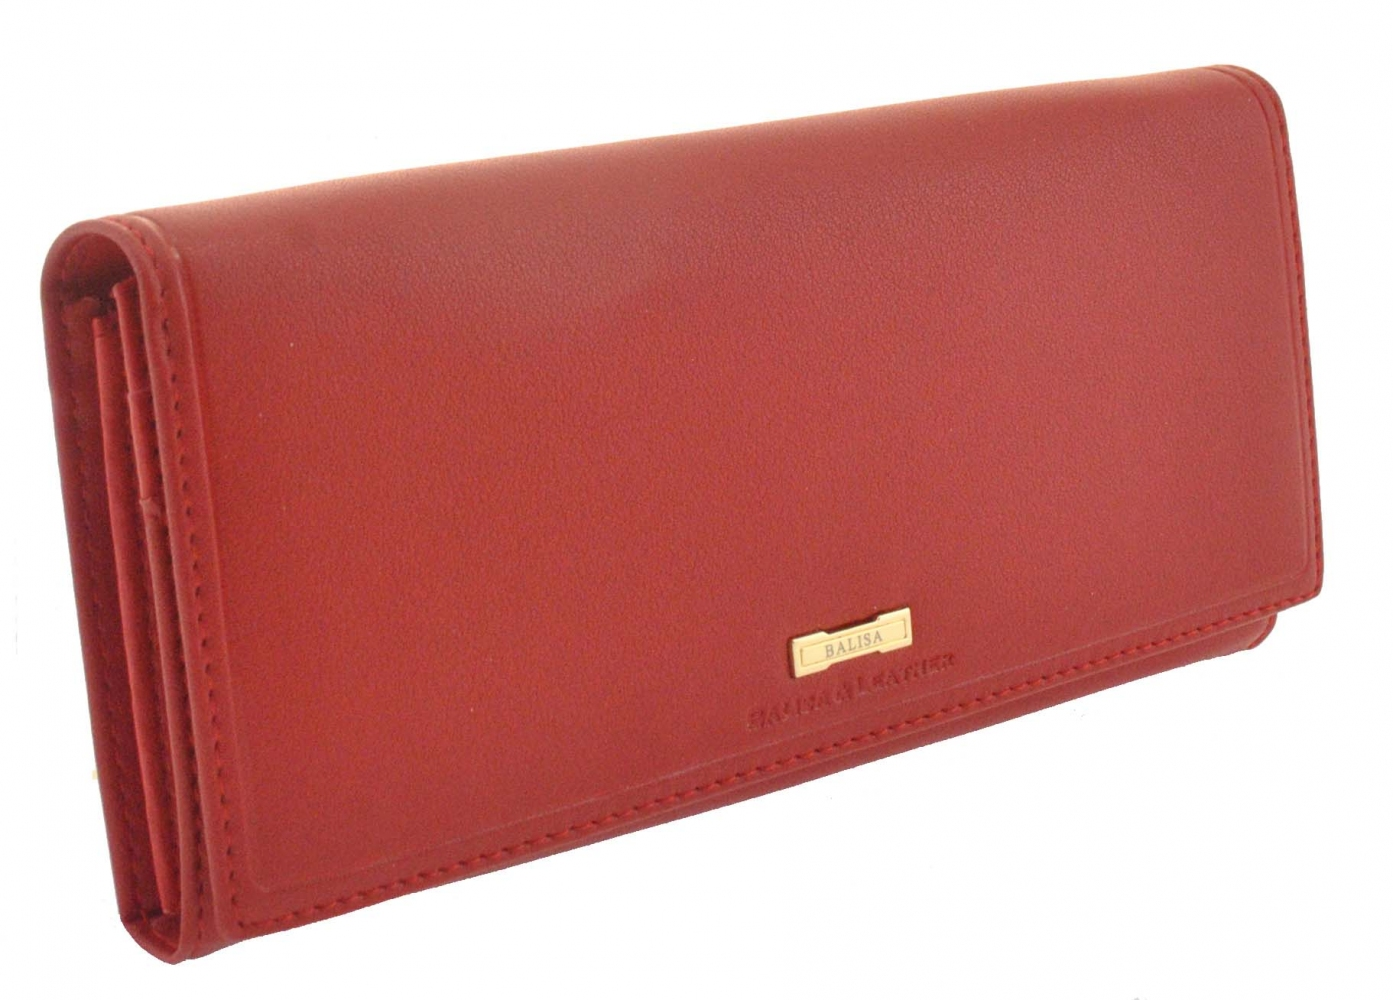 Female purse 174008 red